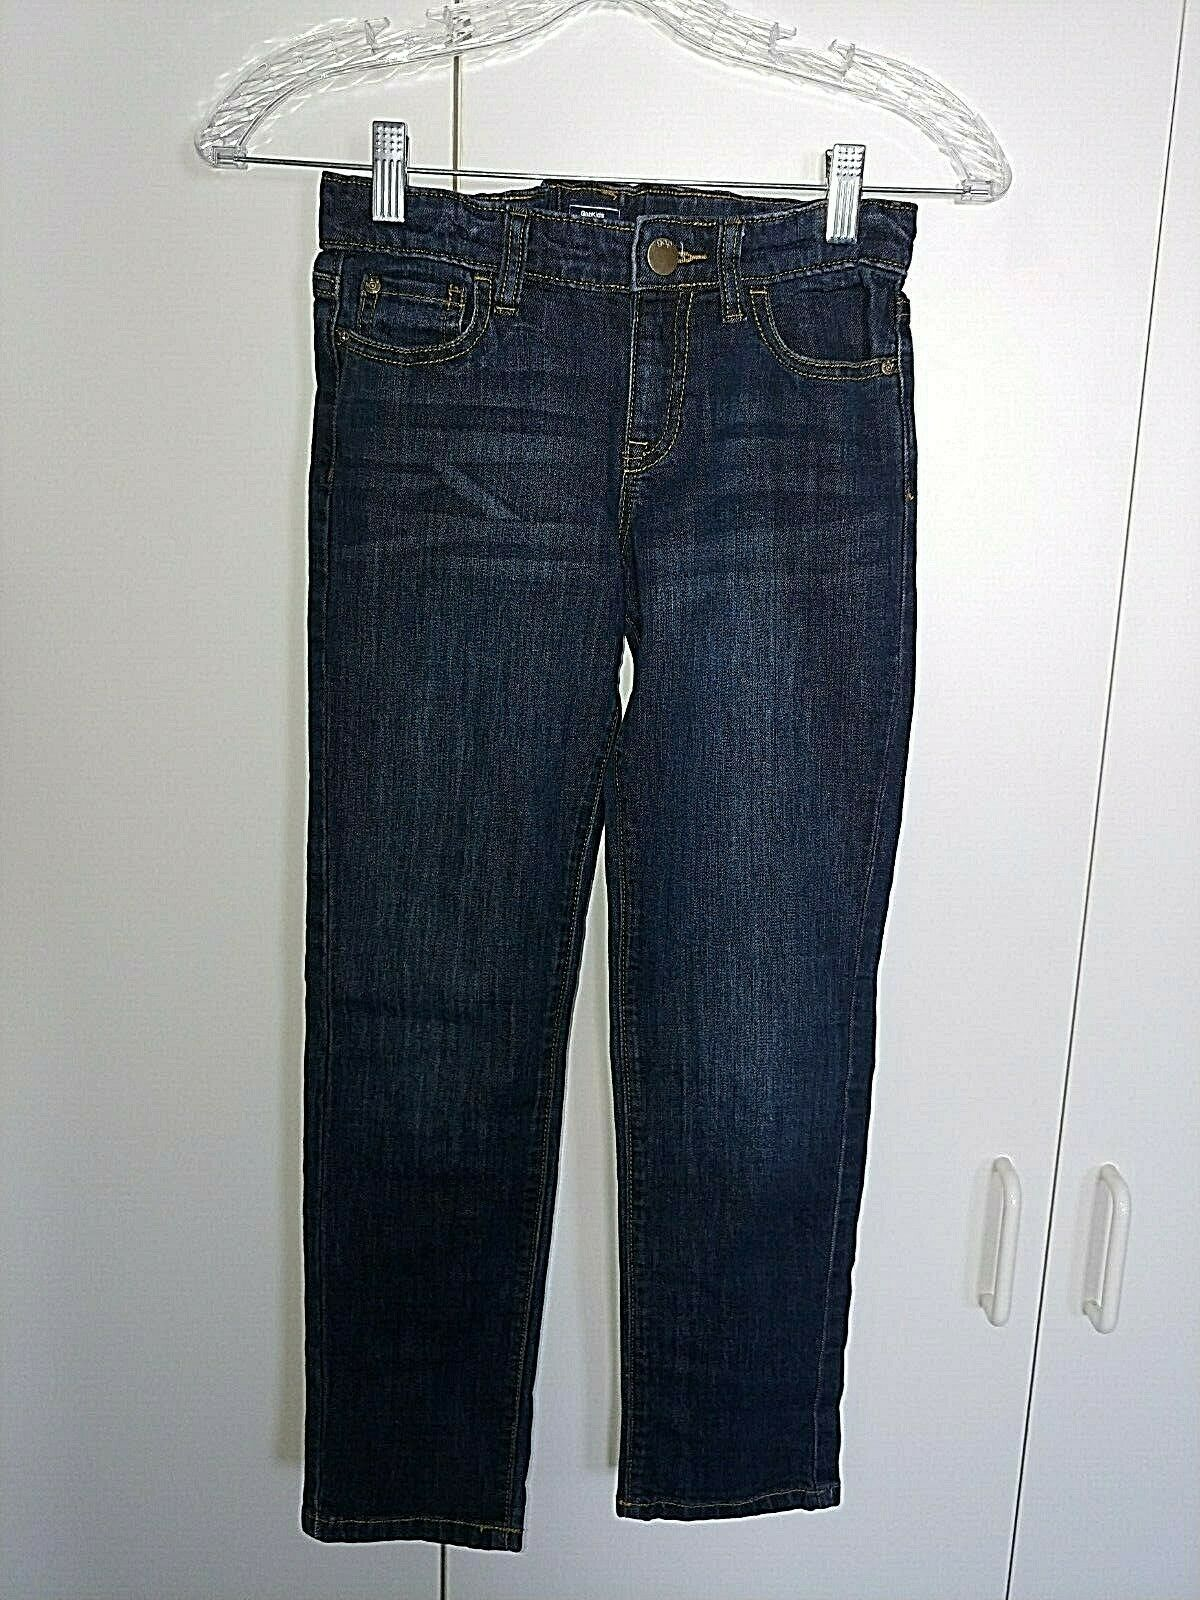 Primary image for GAP GIRLS JEANS W/ADJUSTABLE WAIST-10-GENTLY WORN-SKINNY BOYFRIEND FIT-NICE